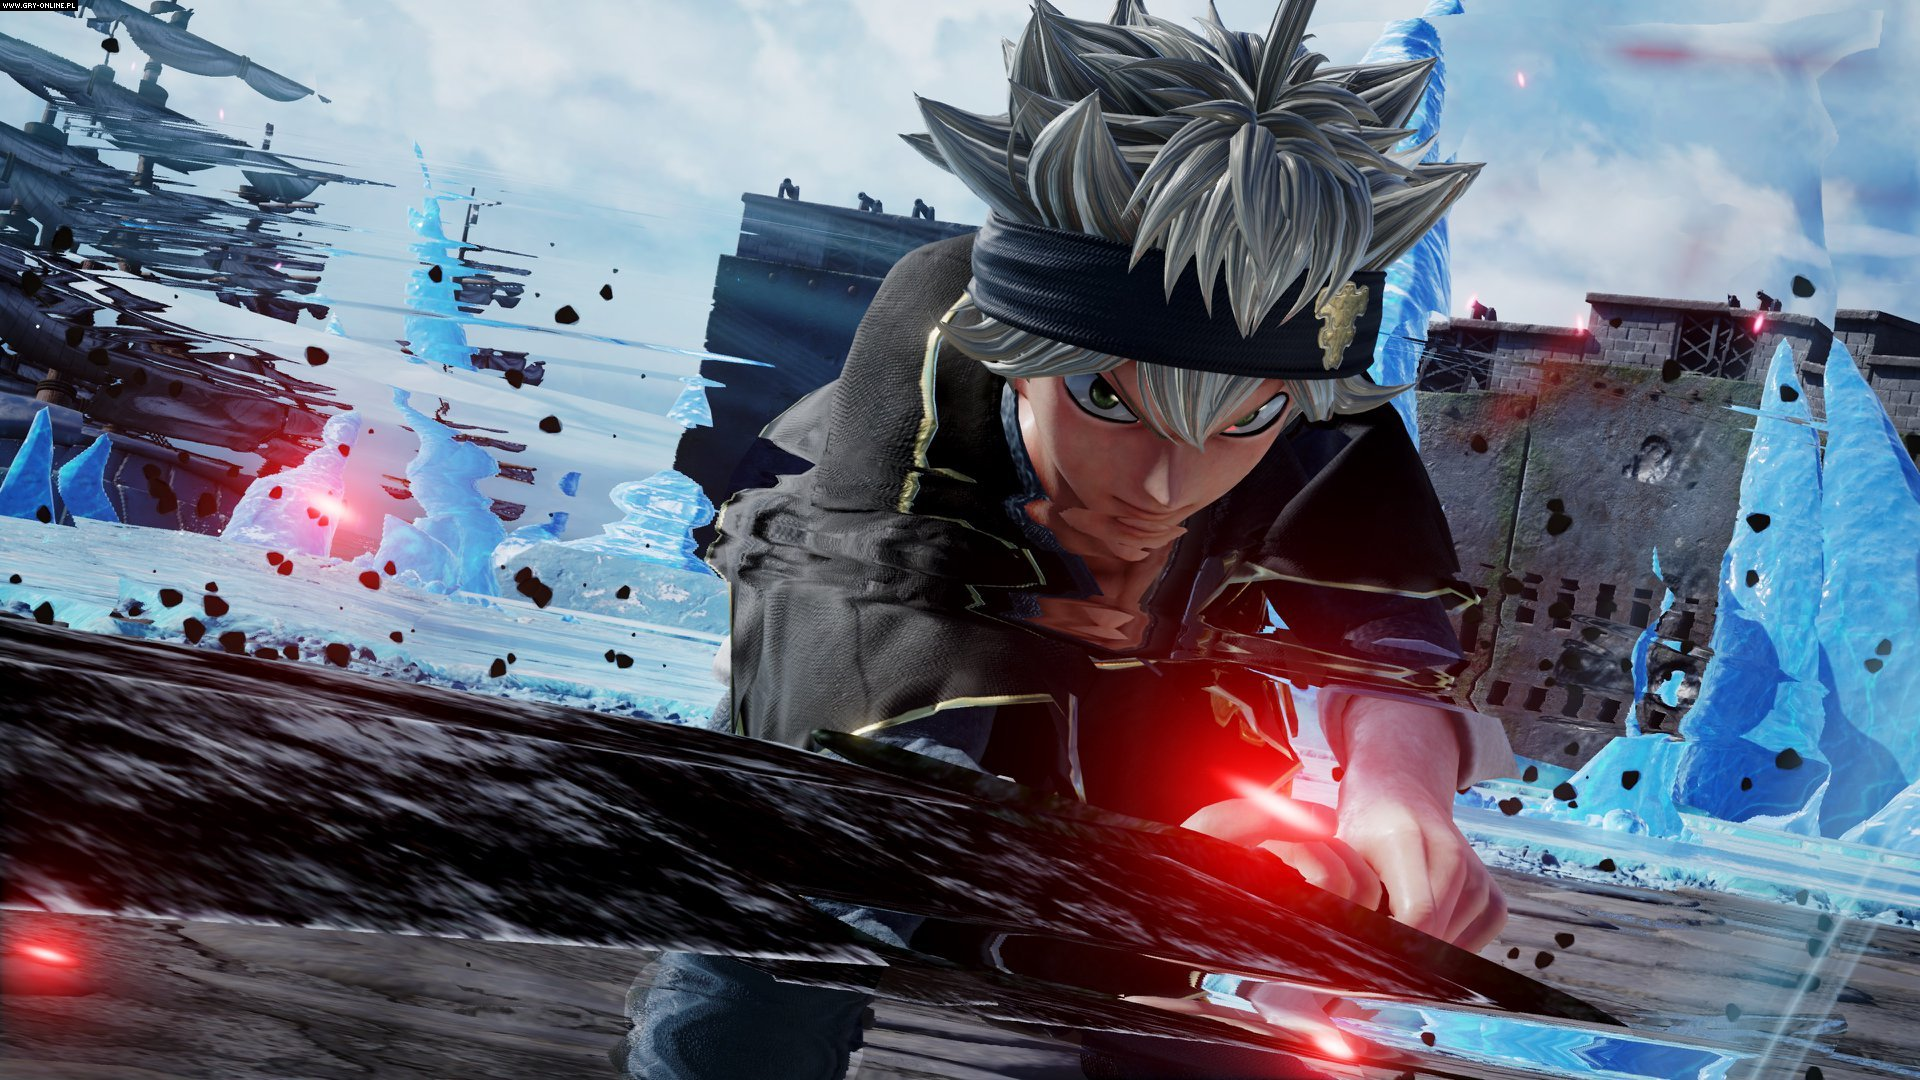 Jump Force PC, PS4, XONE Games Image 26/149, Spike Chunsoft, Bandai Namco Entertainment